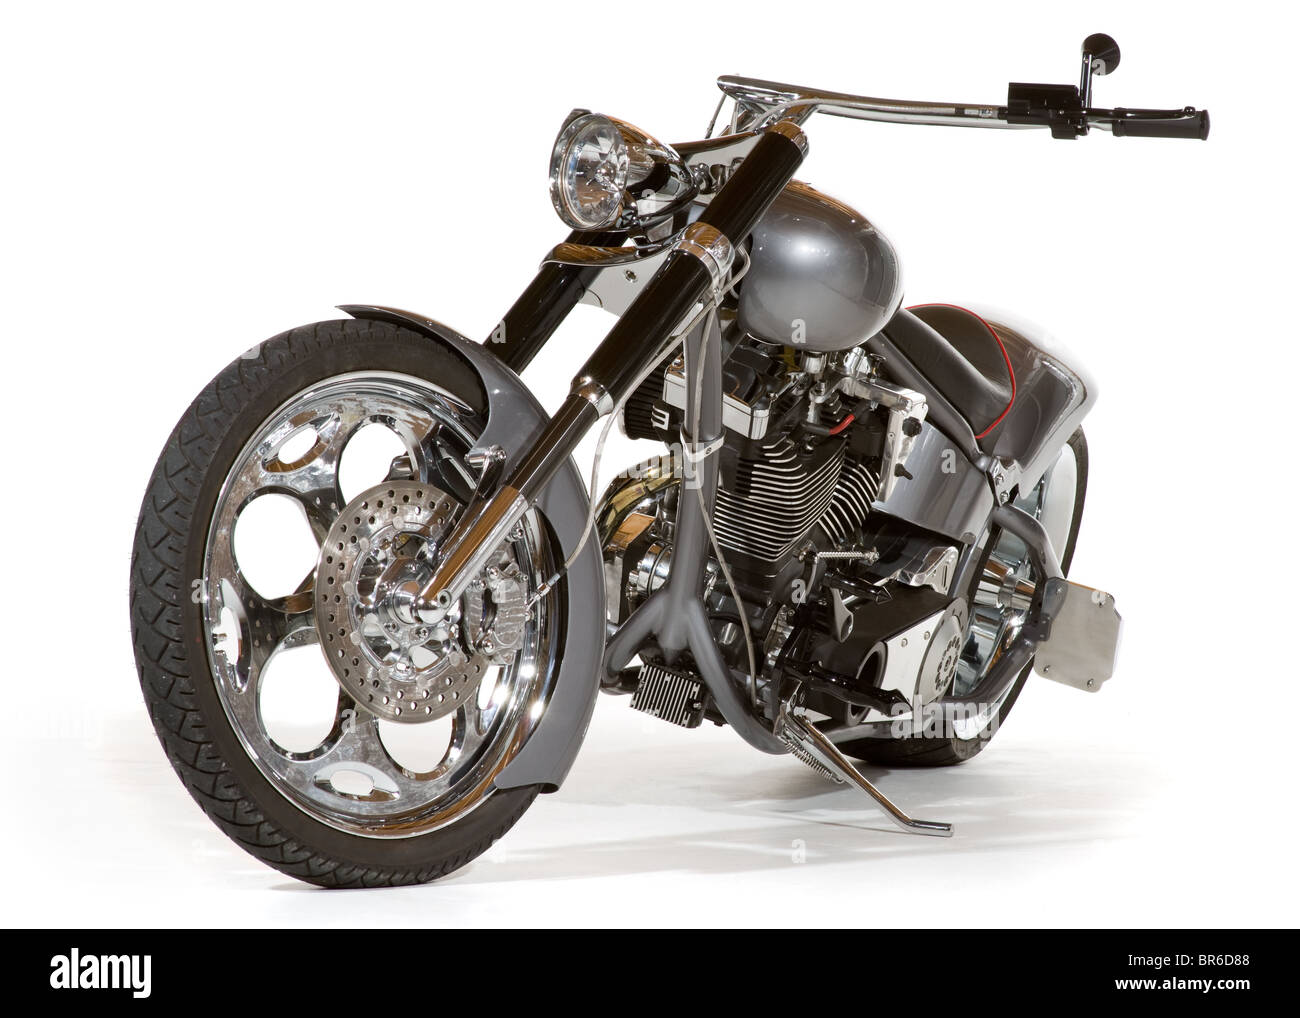 Custom chopper motorcycle seen from a low angle oblique view. Studio shot isolated on white background. - Stock Image